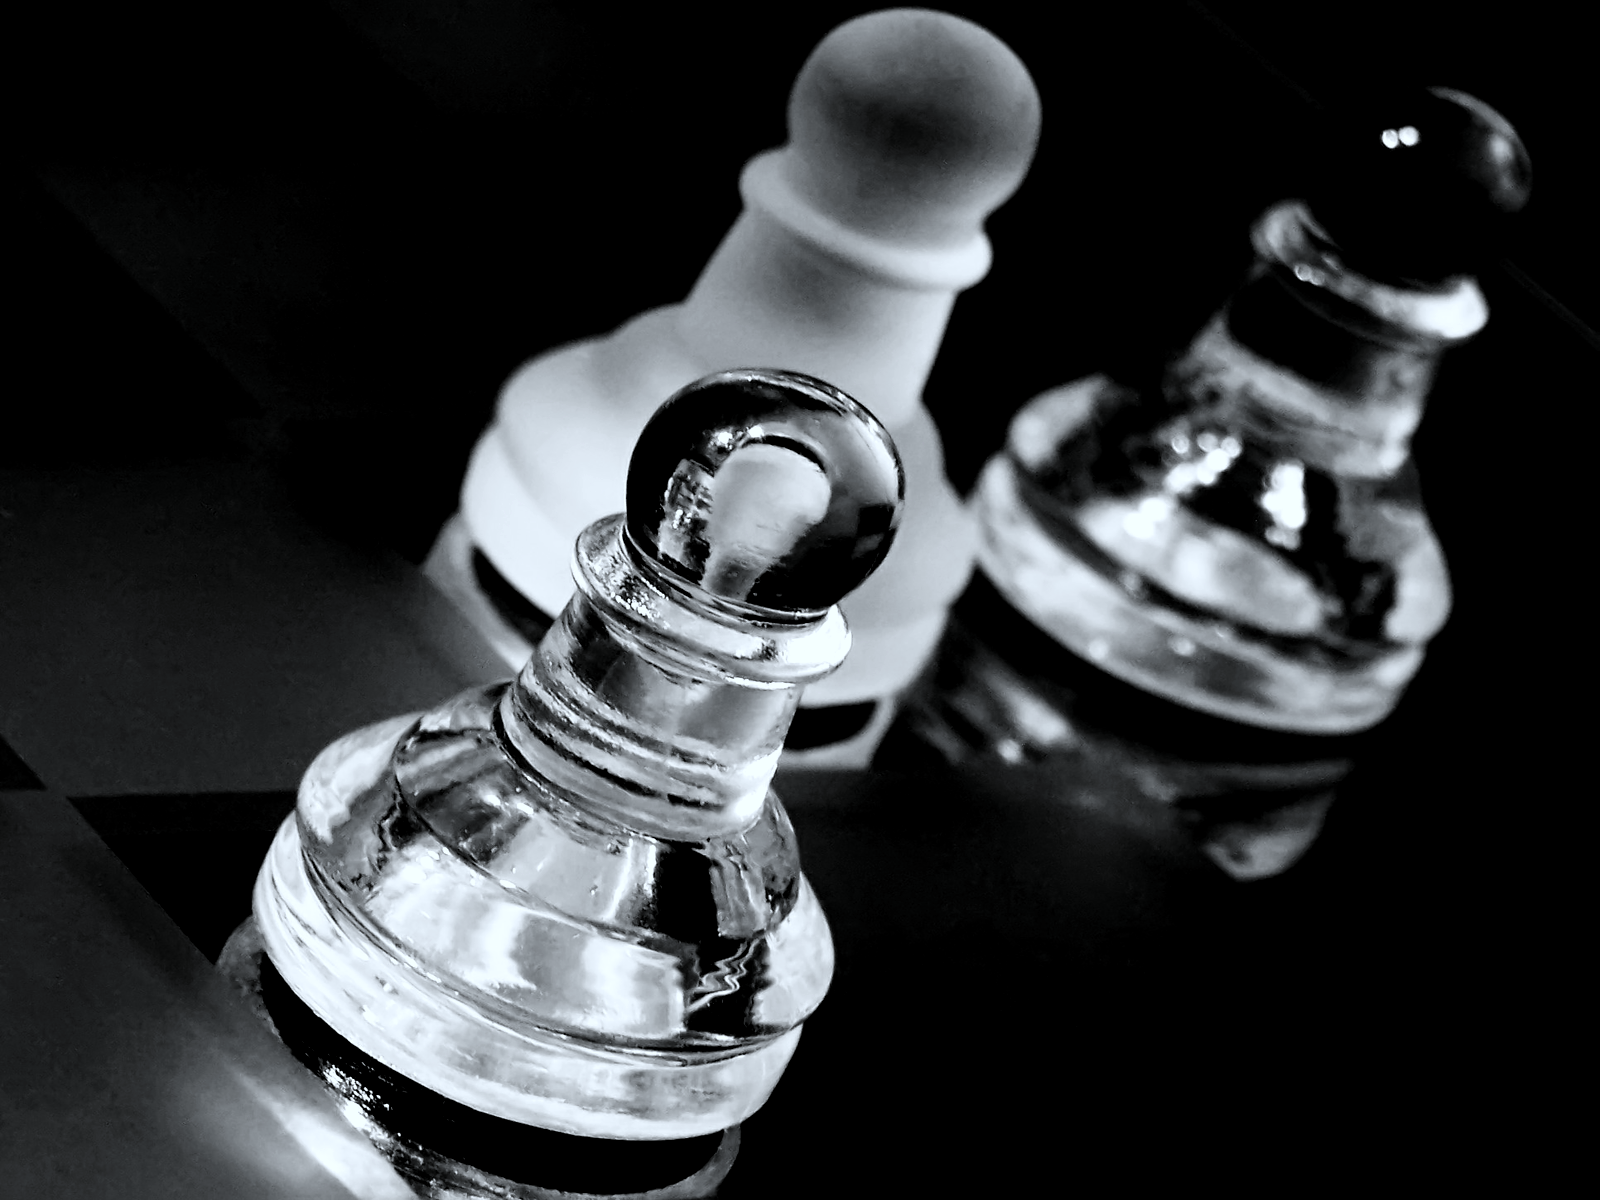 1600x1200 px - Cool Chess